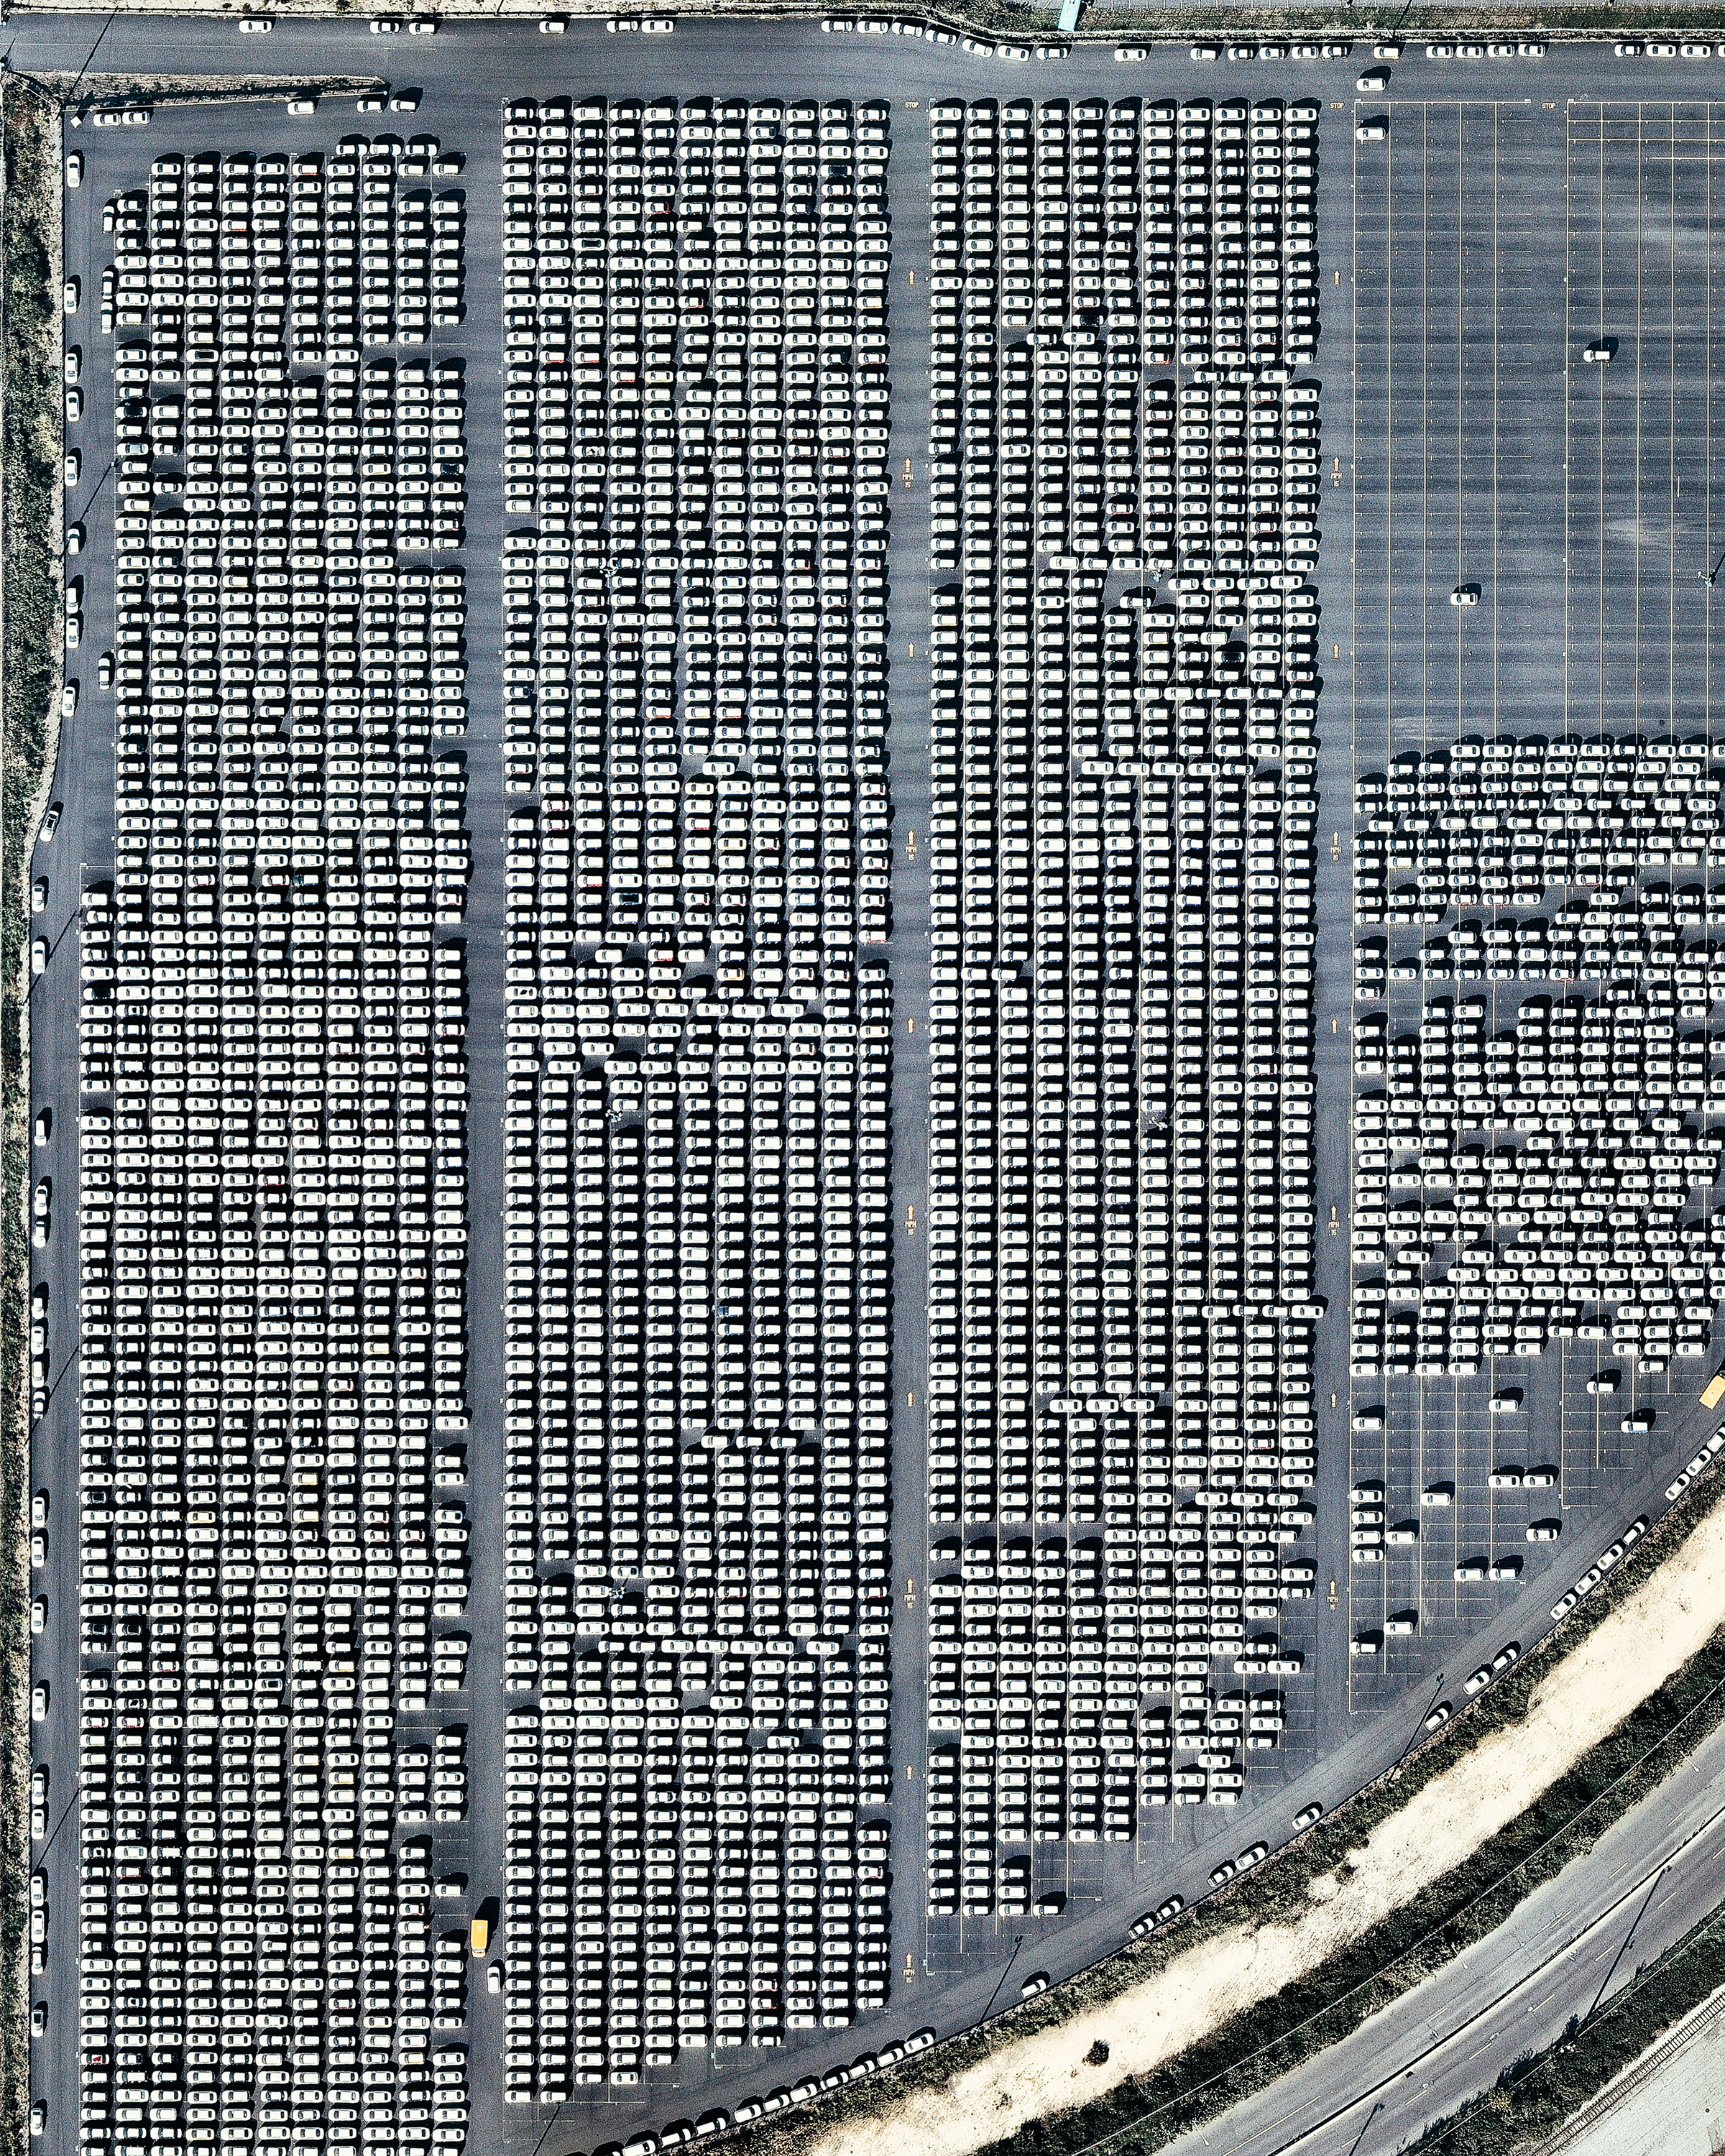 """Hundreds of vehicles are parked in a processing lot near the Port of Philadelphia, Pennsylvania. Since 2010, hundreds of thousands of Hyundai and Kia vehicles have arrived at """"PhilaPort"""" — located on the Delaware River — aboard cargo ships from South Korea. After processing, these vehicles are delivered to dealerships across the country by truck and by rail.  39°54'13.9""""N, 75°08'34.6""""W  Source imagery: Nearmap"""